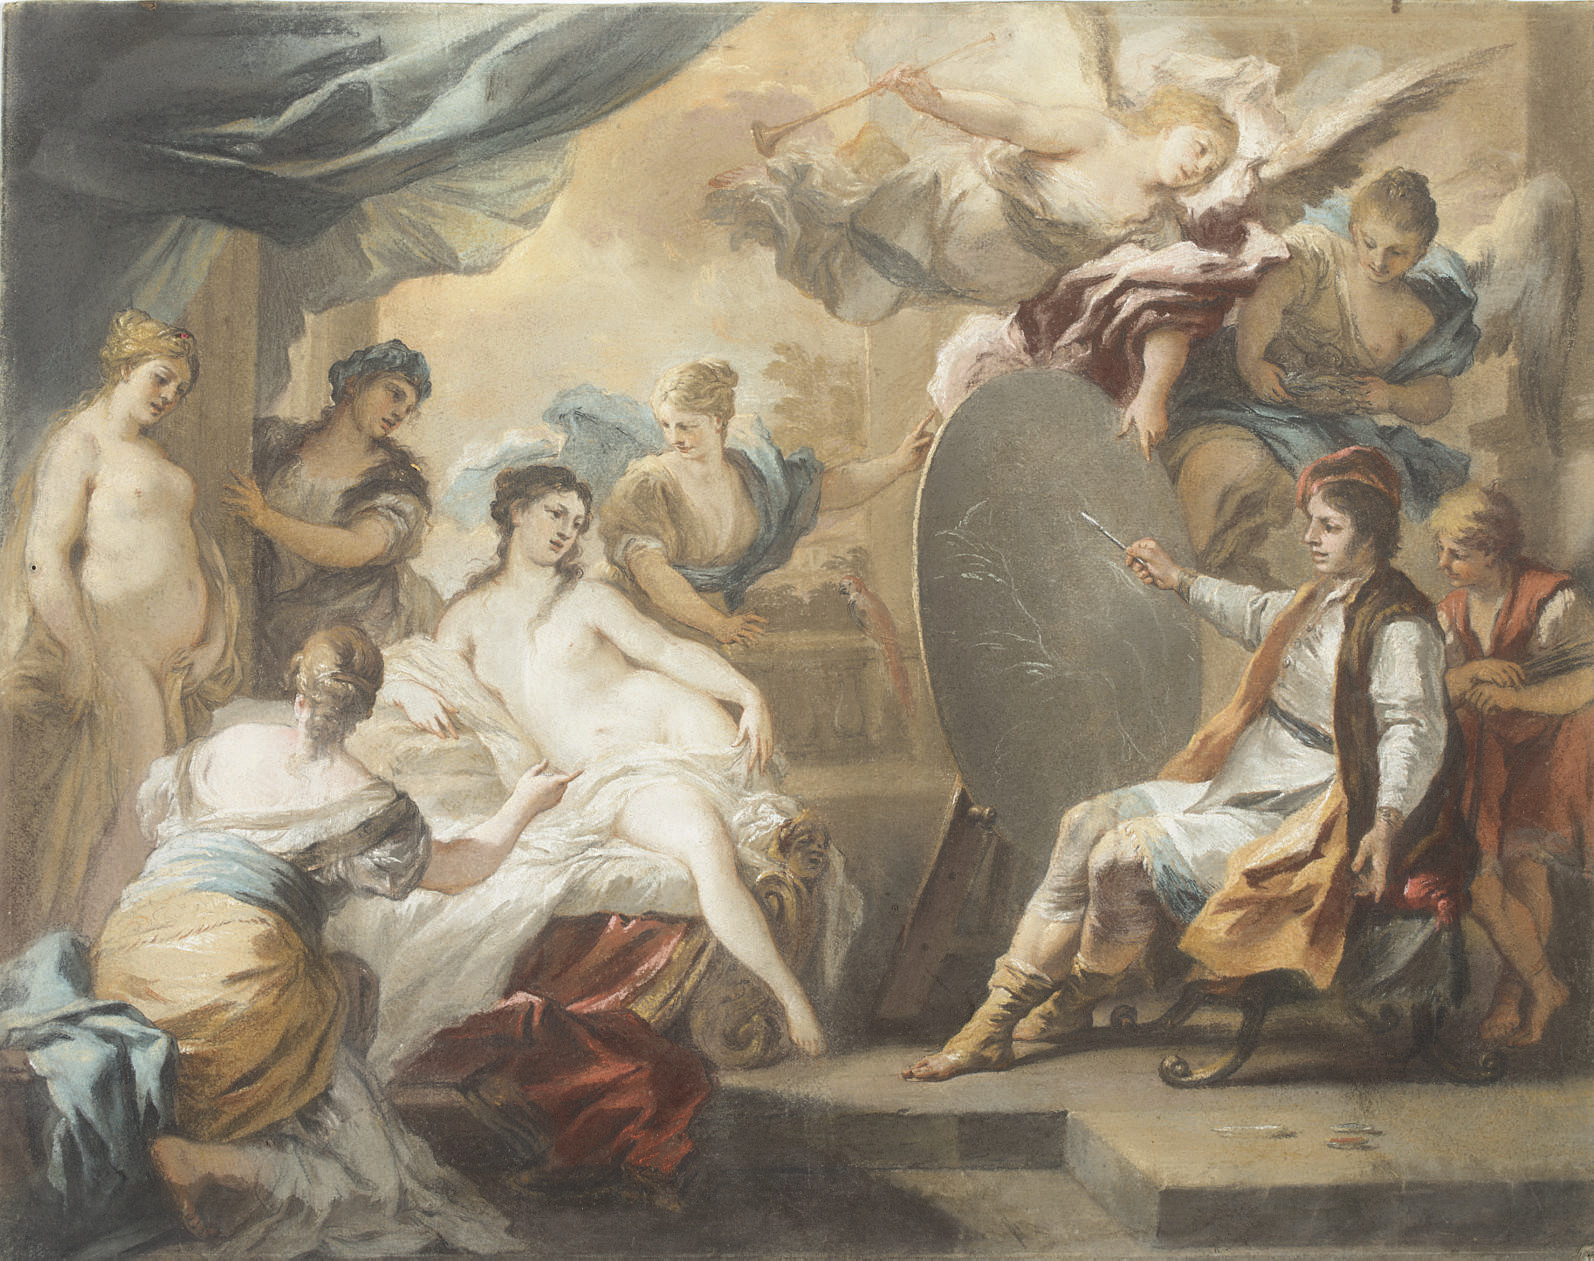 Zeuxis painting Helena, after Solimena